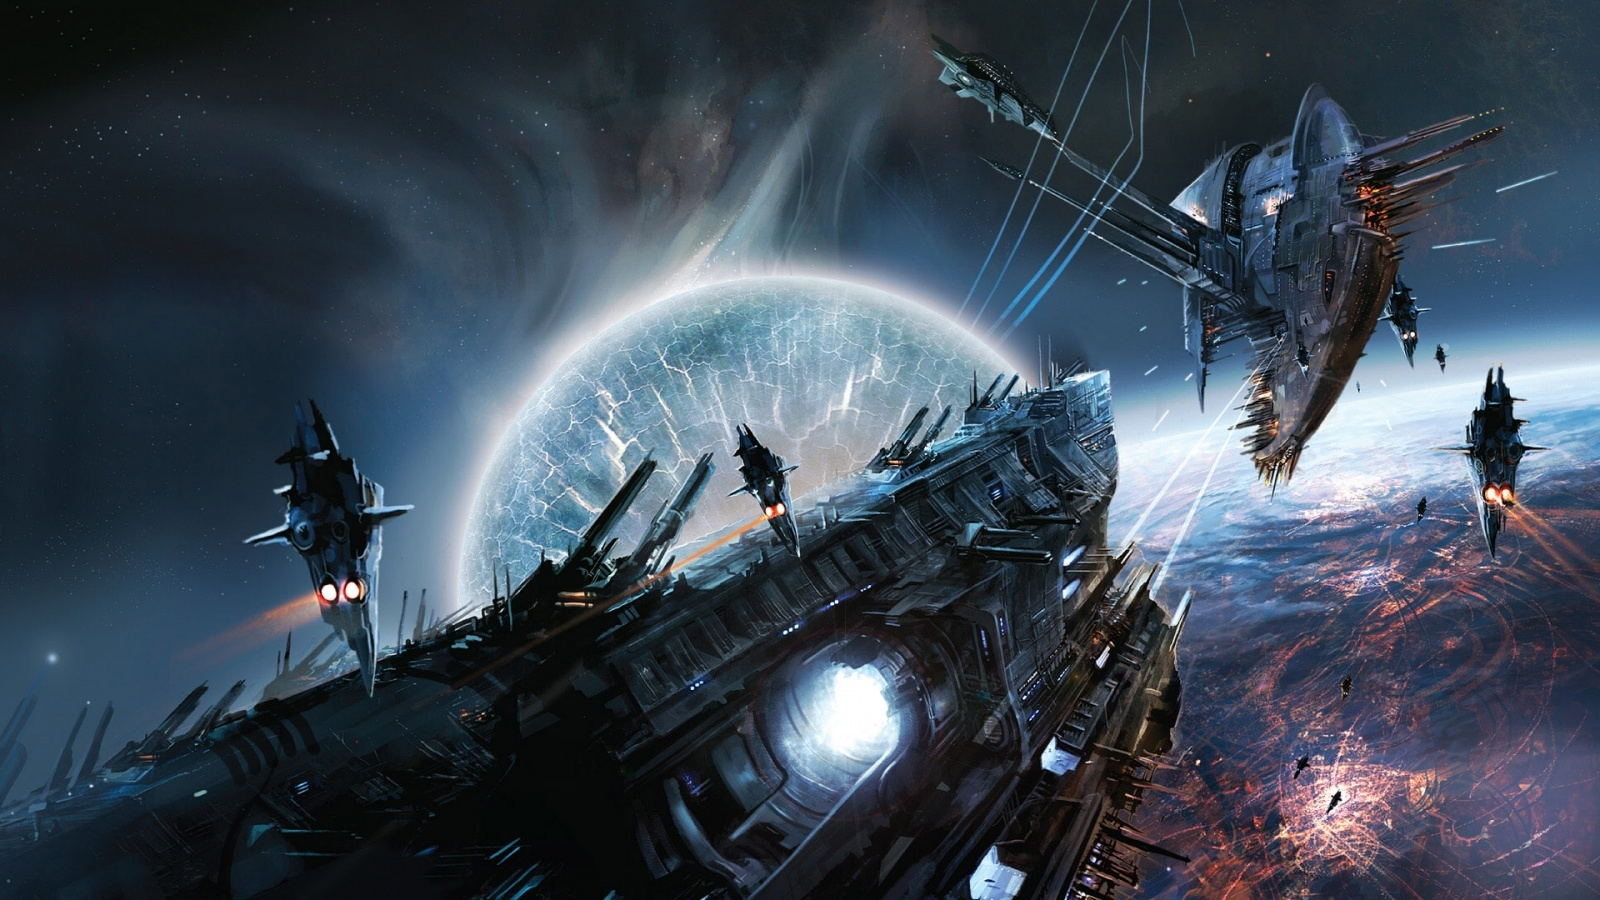 fantasy space spaceships hd wallpaper 1080p | download wallpapers page